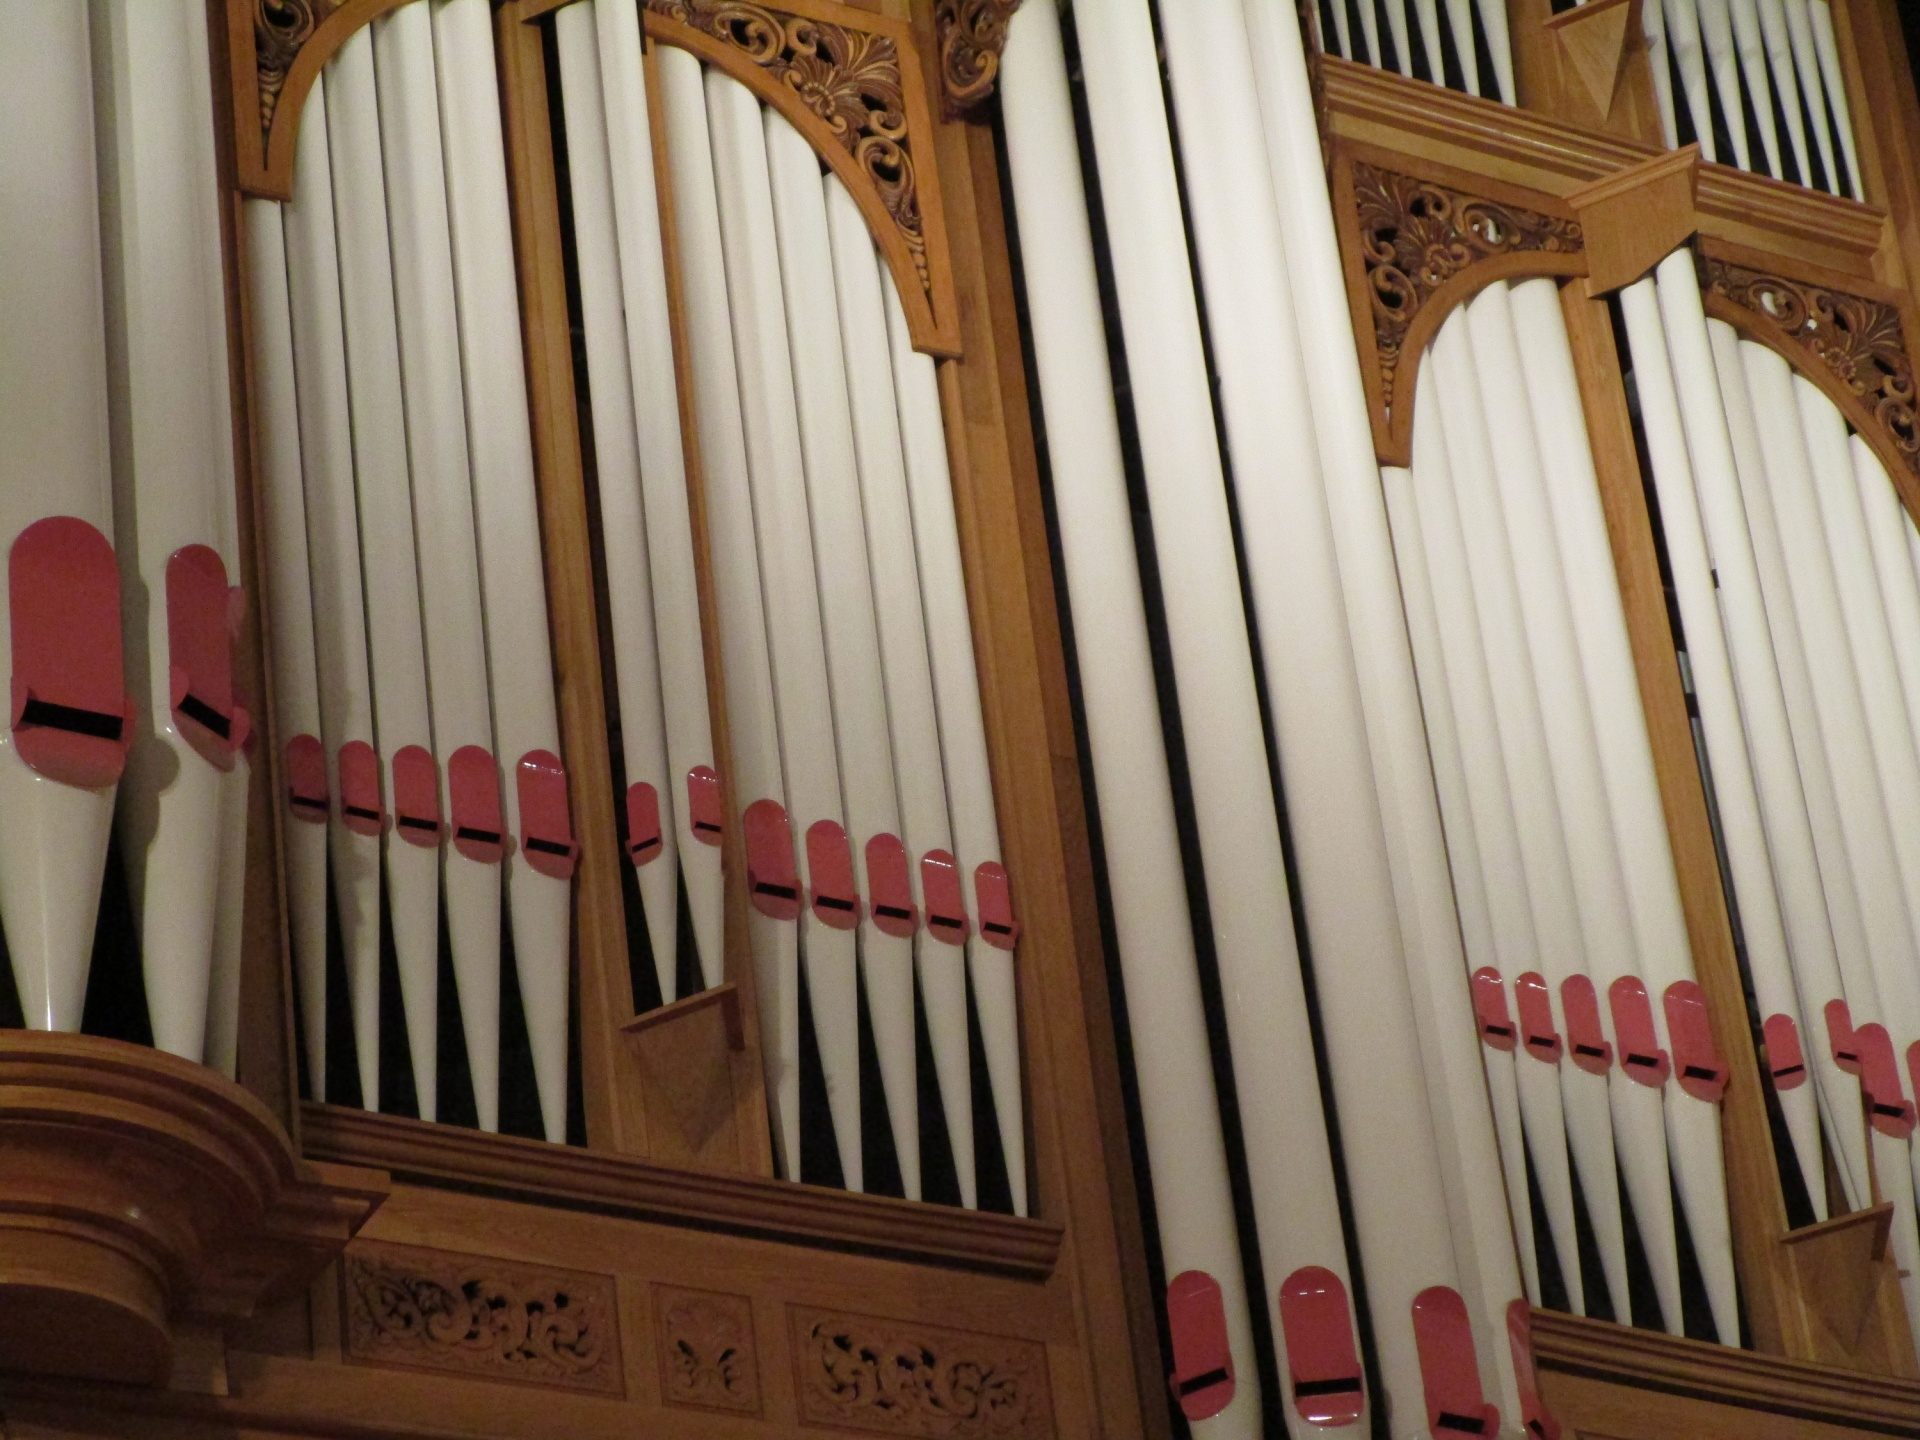 pipeorganfront1526840228guc.jpg